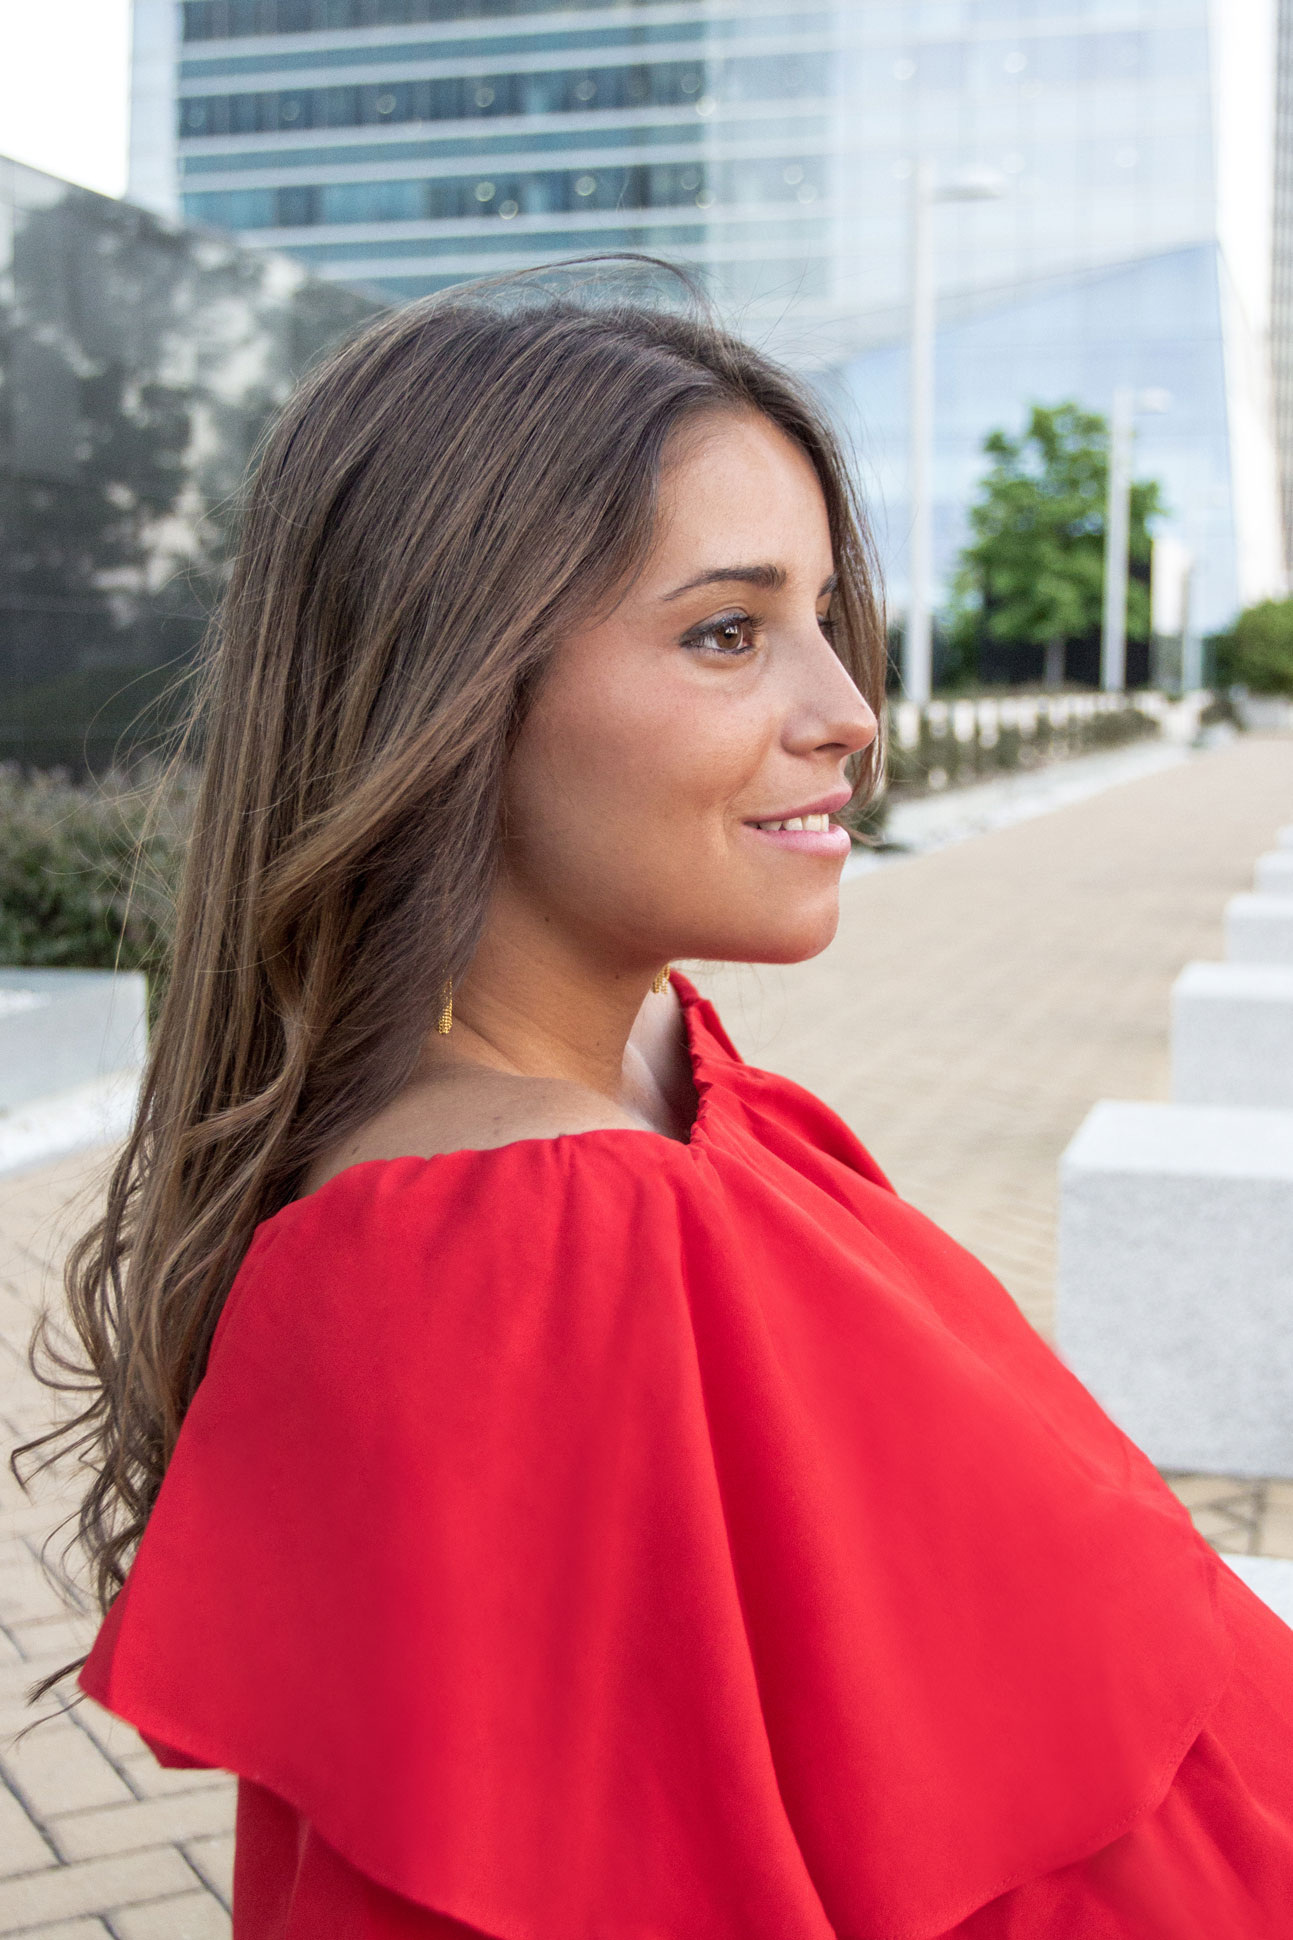 madeinstyle_she_in_red_dress_vestido_rojo_summer_closs_earrings-13